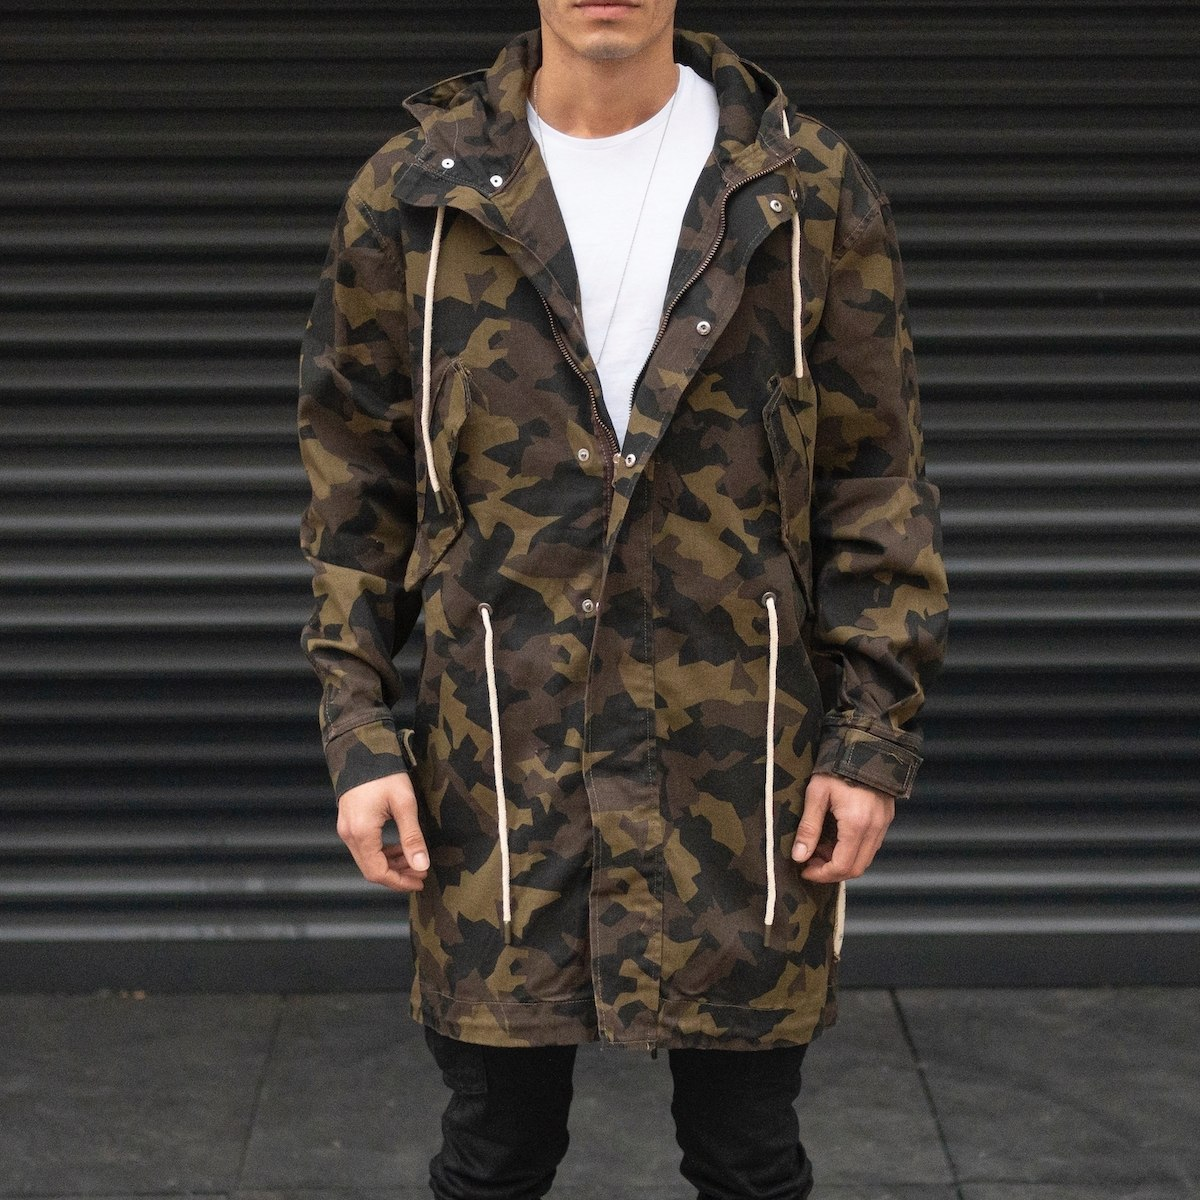 Men's Camo Patterned Coat In Khaki